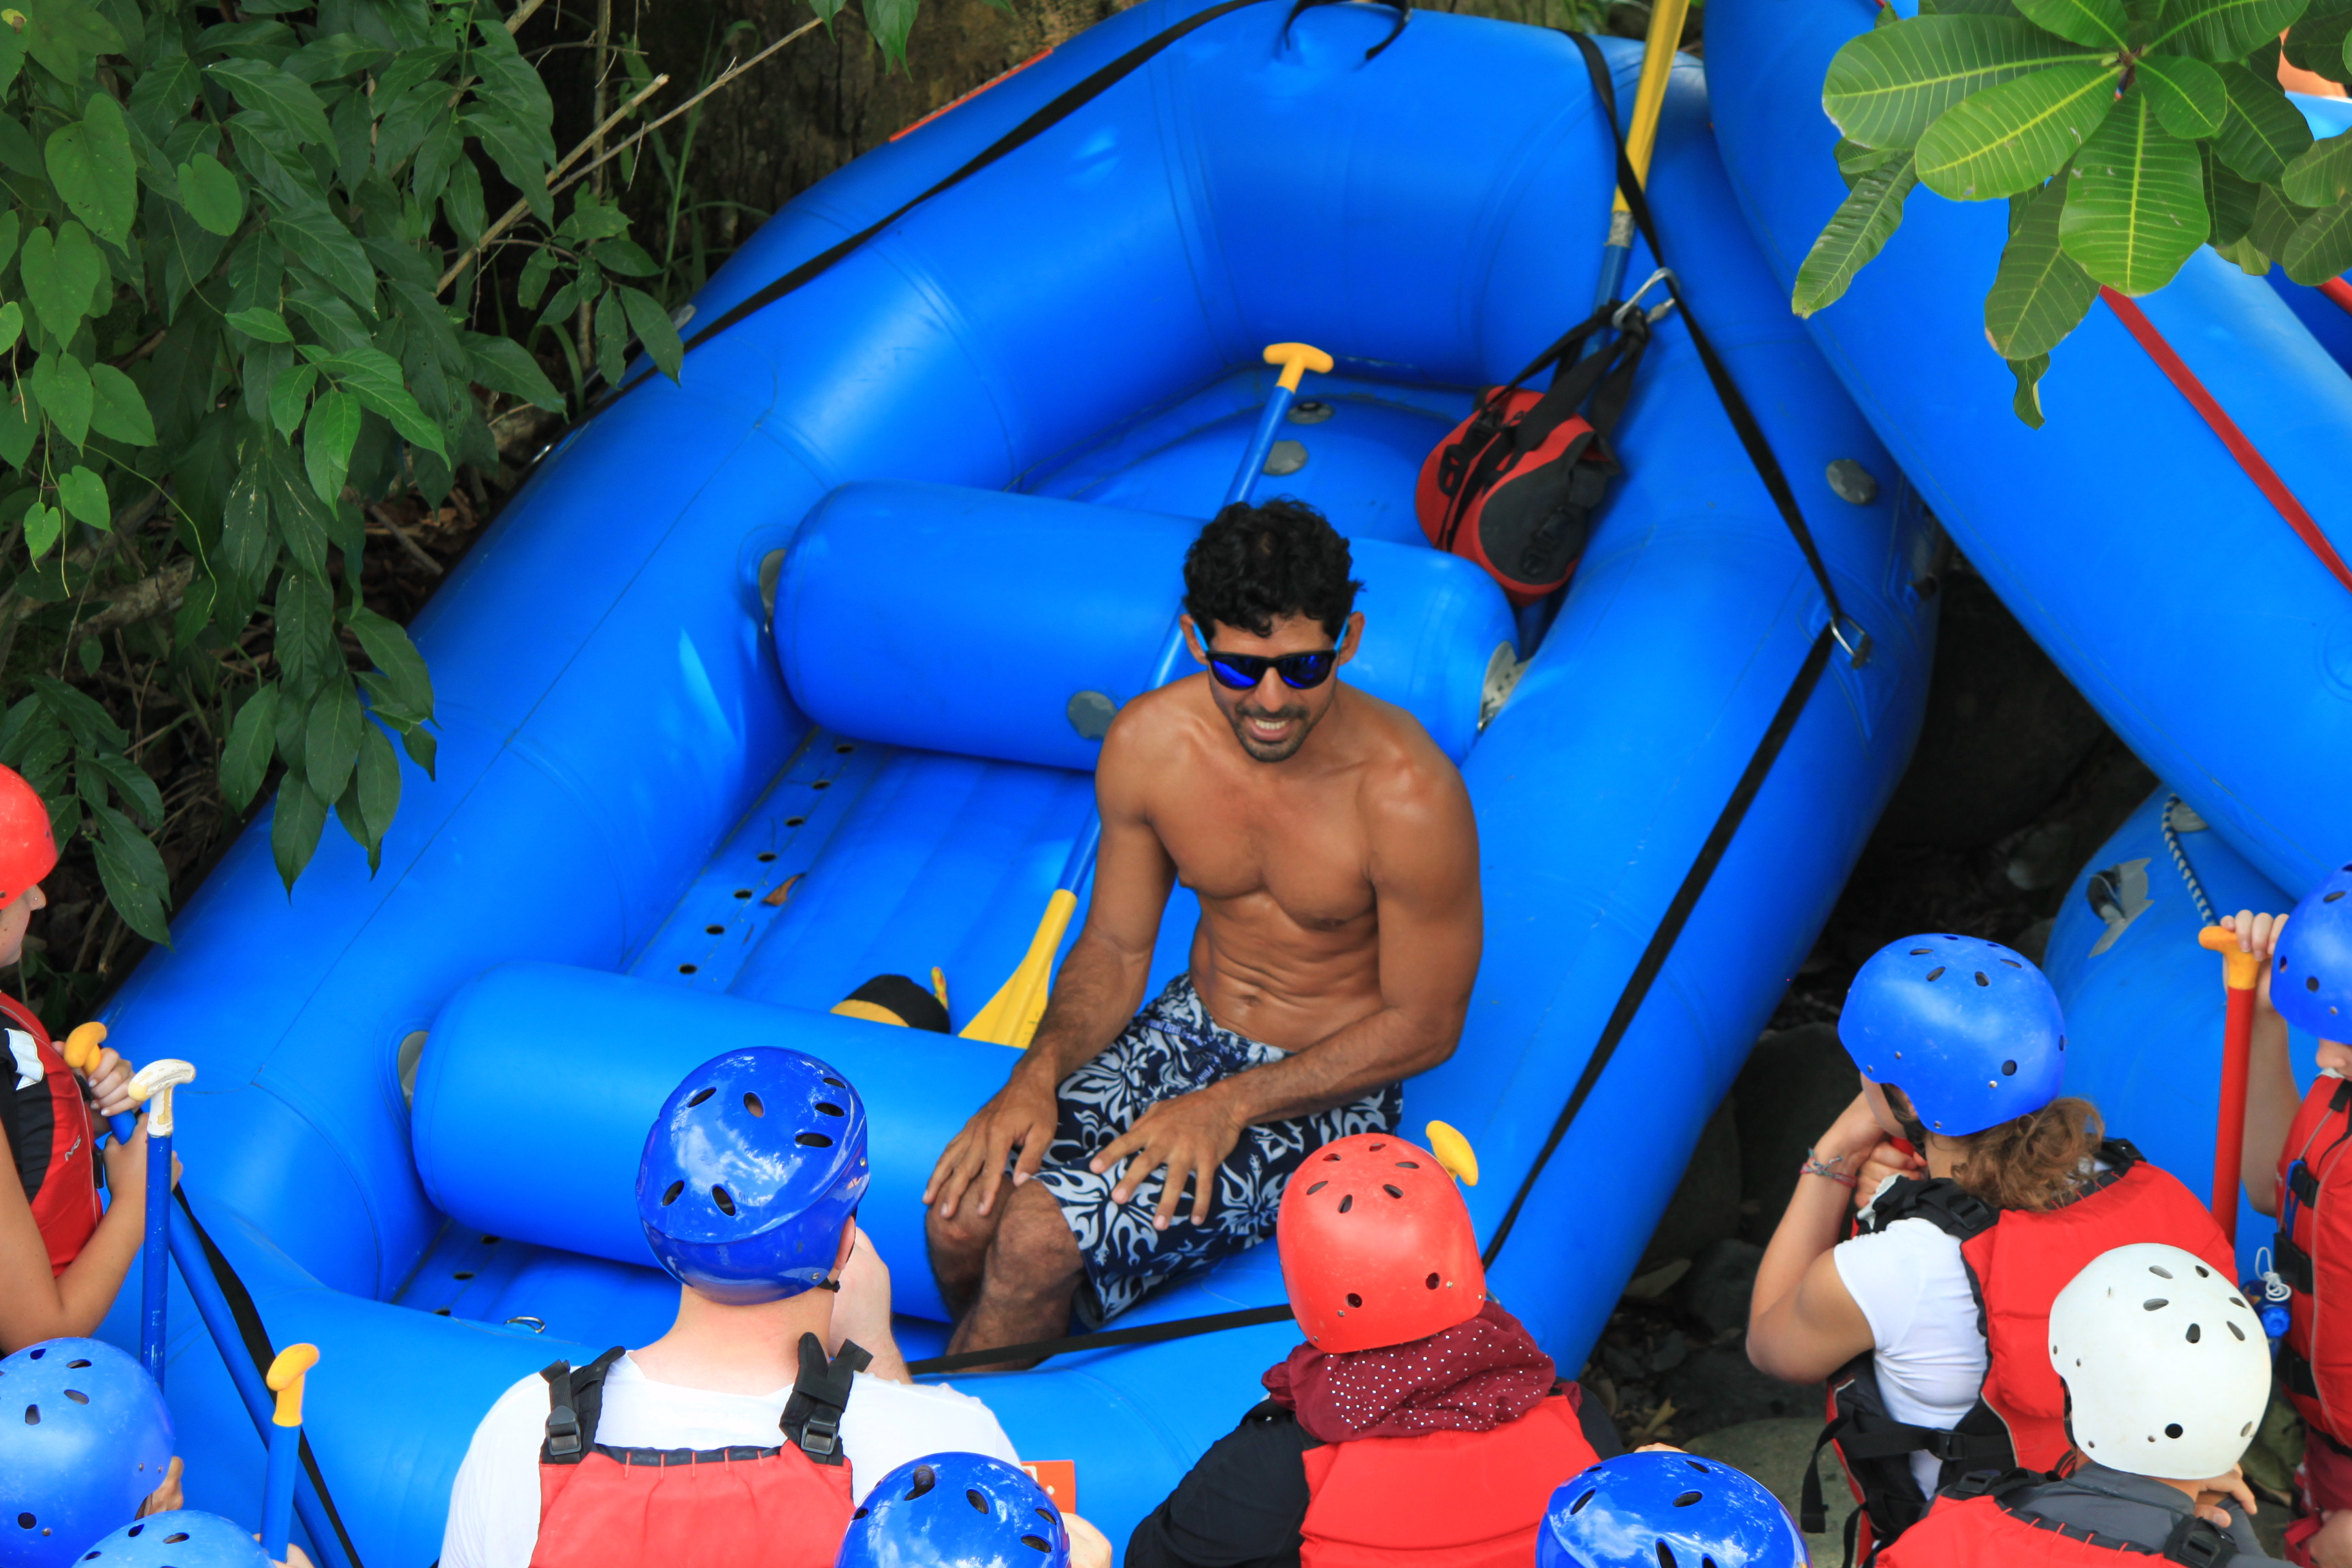 Rafting safety briefing costa rica